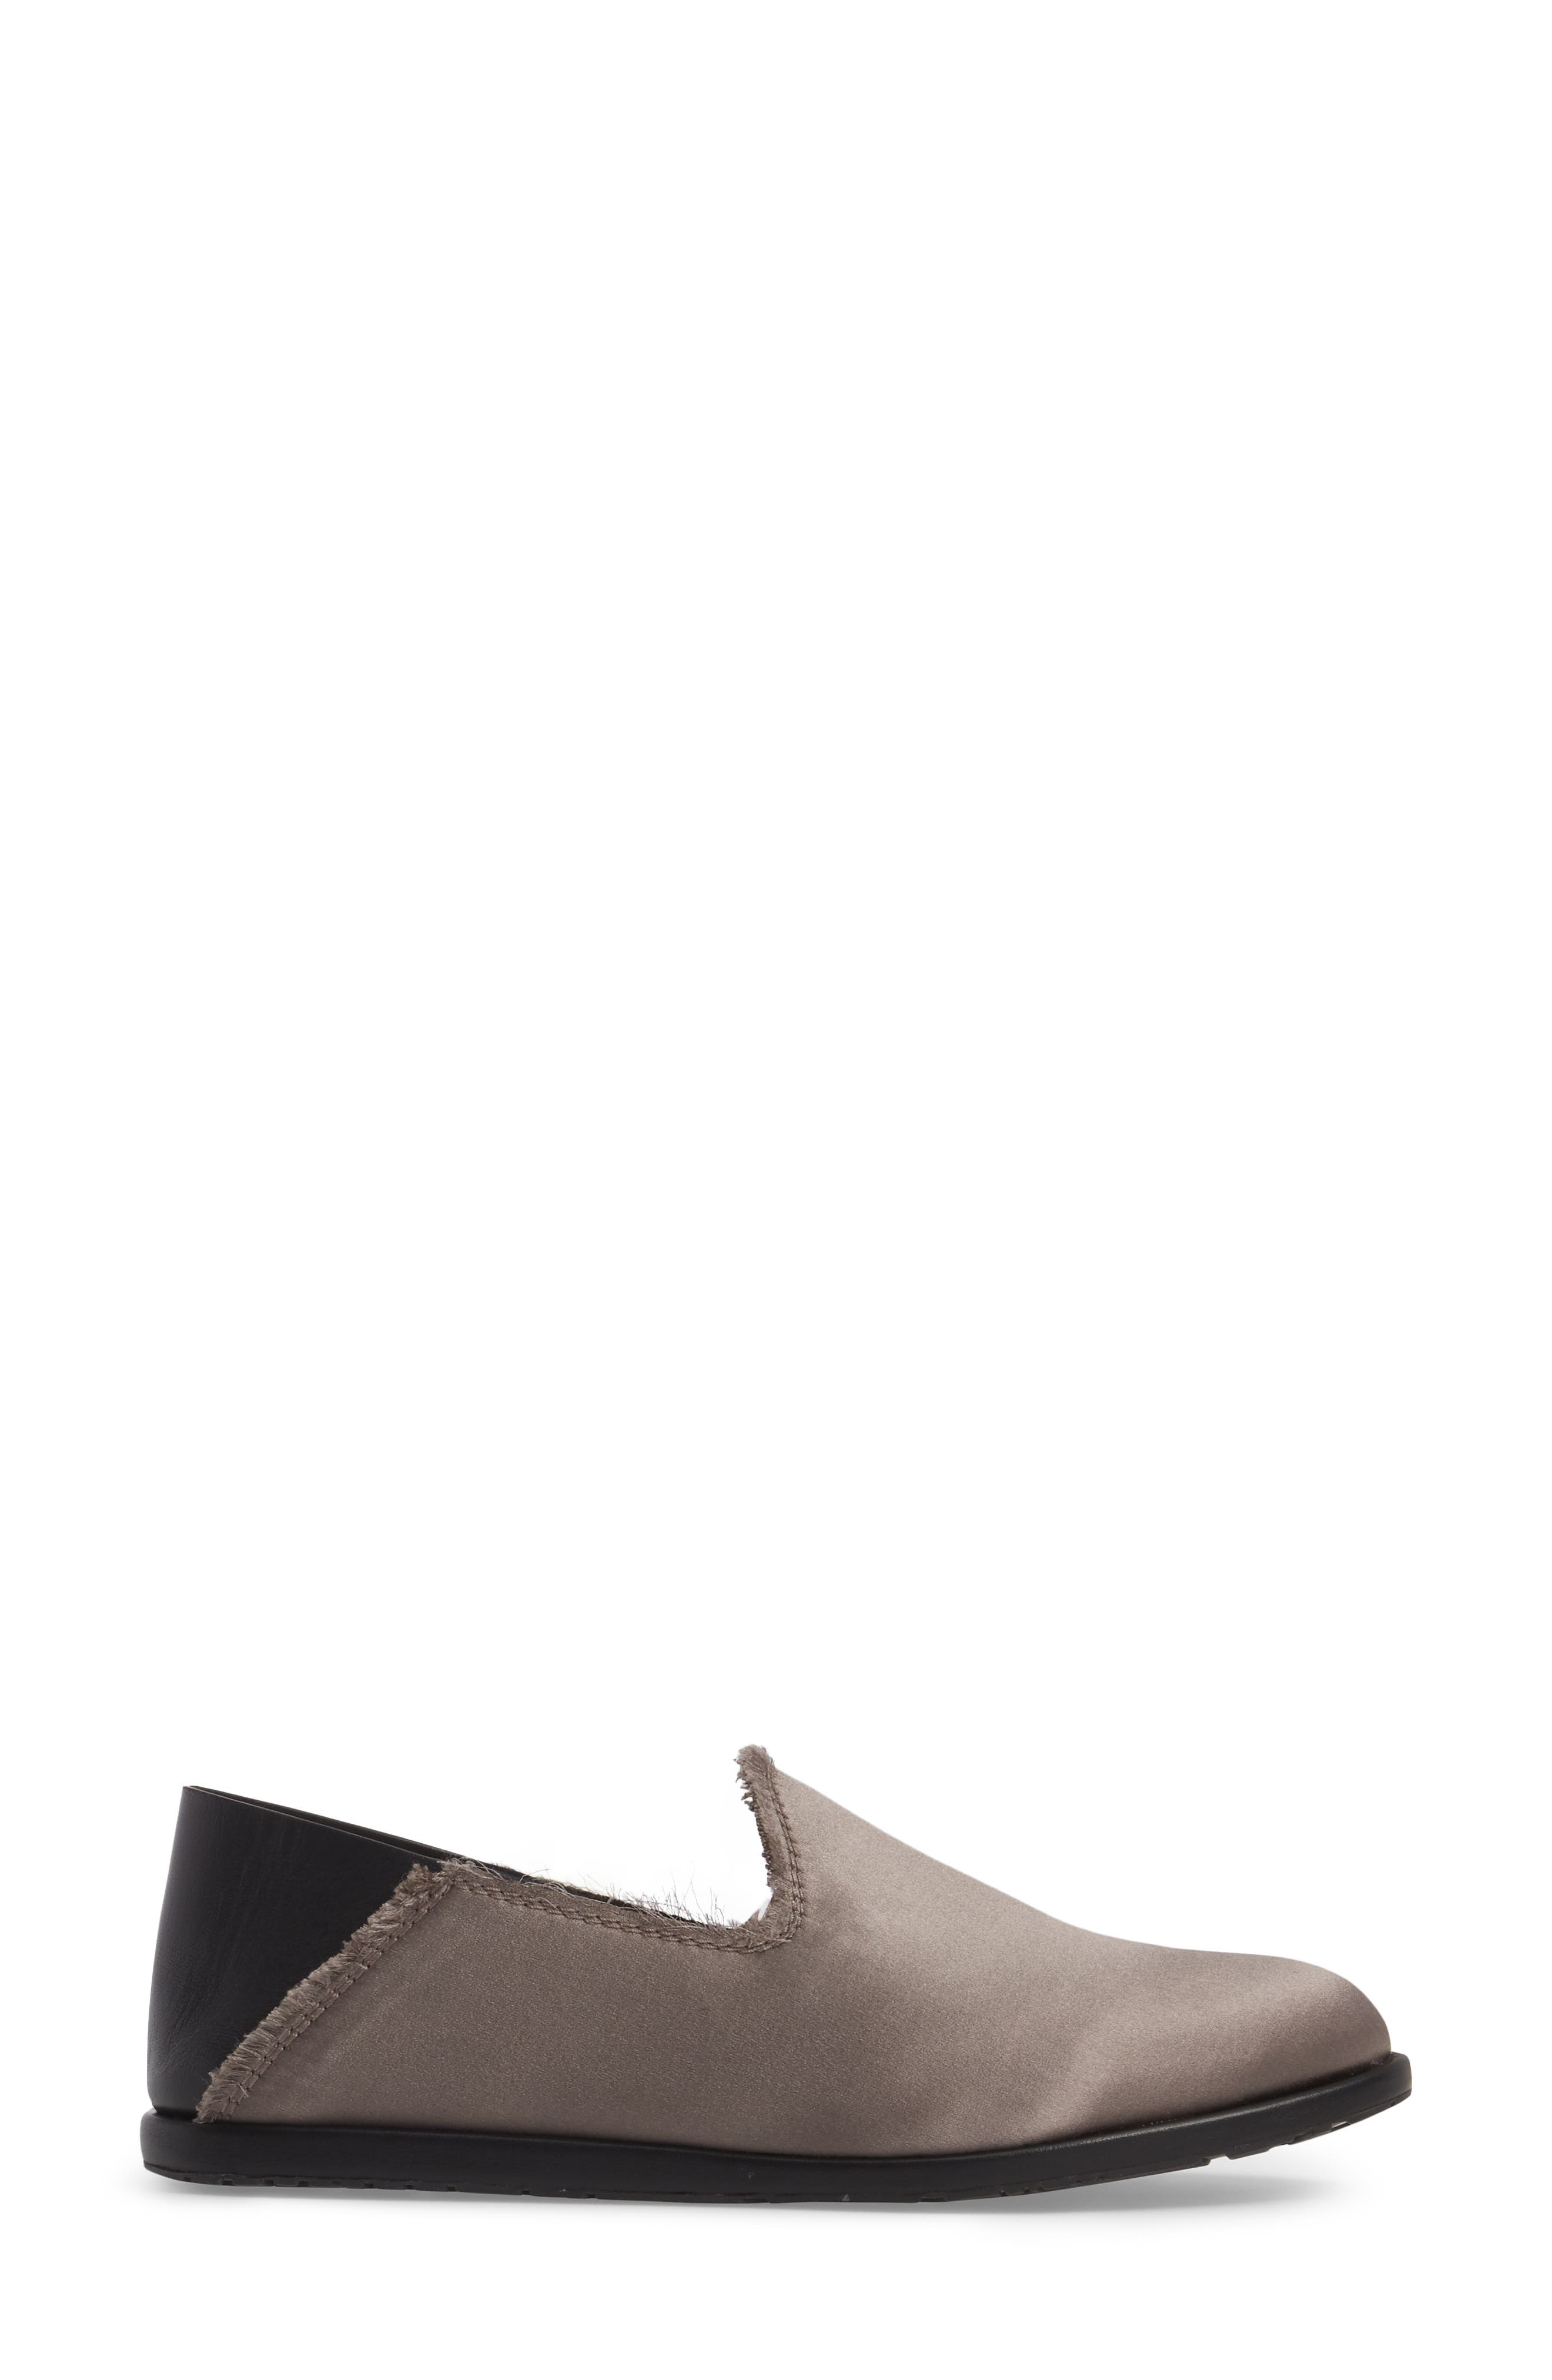 Yamir Convertible Loafer,                             Alternate thumbnail 2, color,                             020